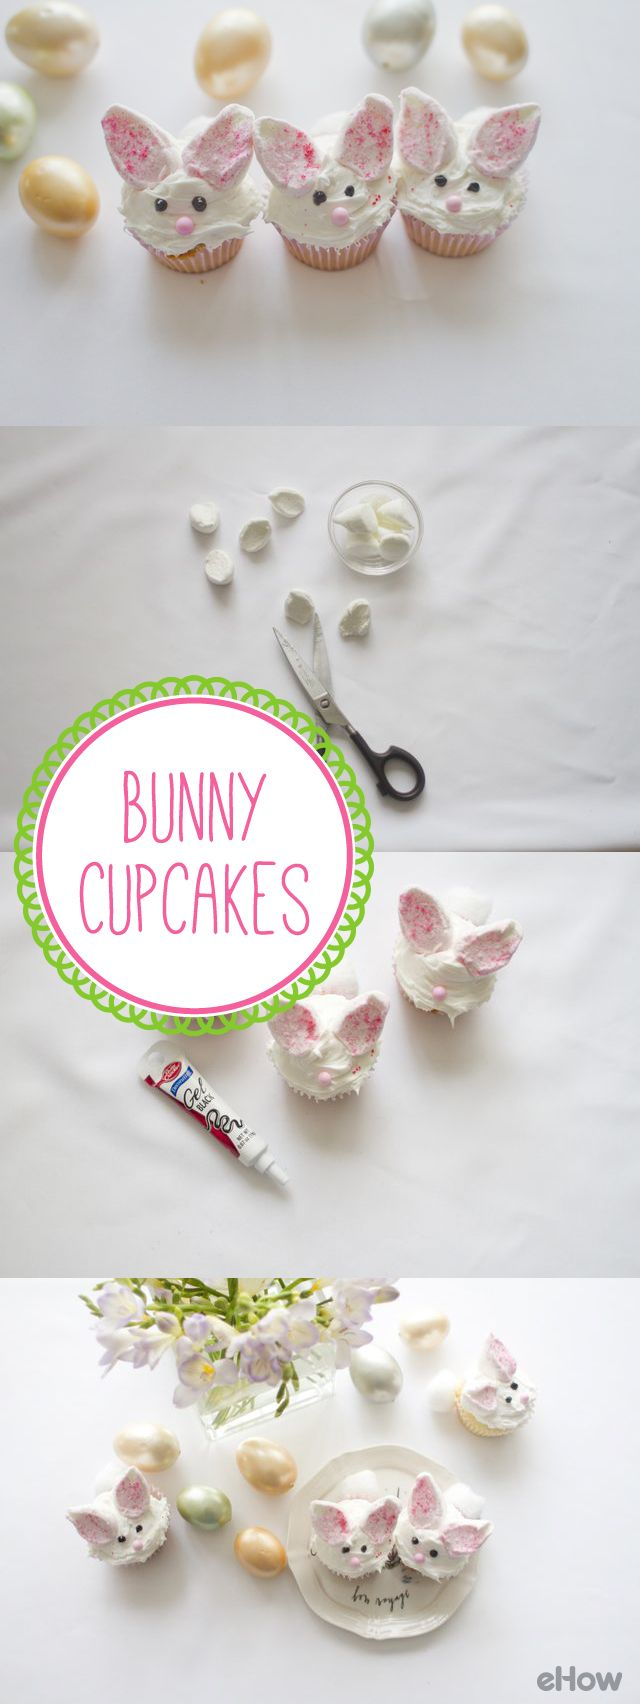 These adorable bunny cupcakes are must for your Easter gathering or any spring occasion that calls for desserts! The cute little ears and cotton tails are a fun way to transform an ordinary cupcake into something irresistibly cute. You can either use a boxed cupcake mix for this decorating project, or go one step further and make homemade cupcakes! http://www.ehow.com/list_5985049_bunny-cupcake-ideas.html?utm_source=pinterest.com&utm_medium=referral&utm_content=freestyle&utm_campaign=fanpage